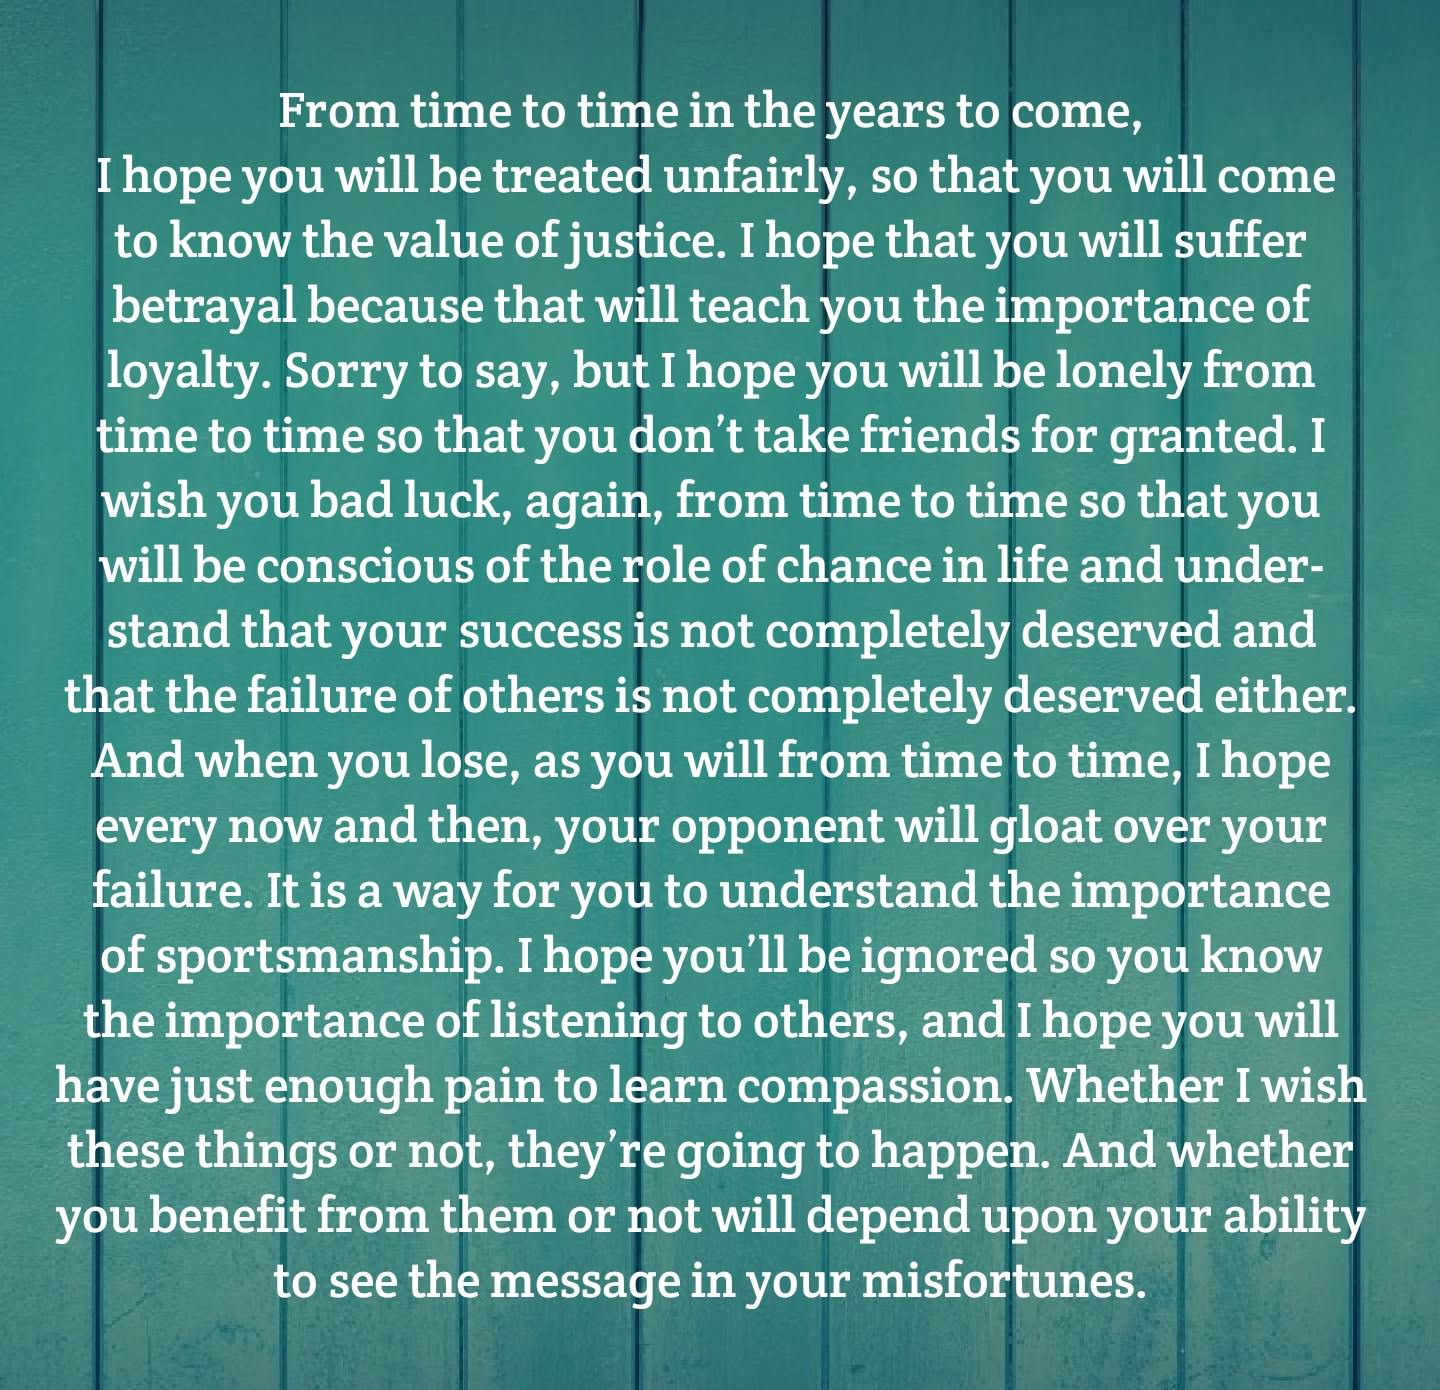 [Image] I hope you will be treated unfairly, so that you will come to know the value of justice